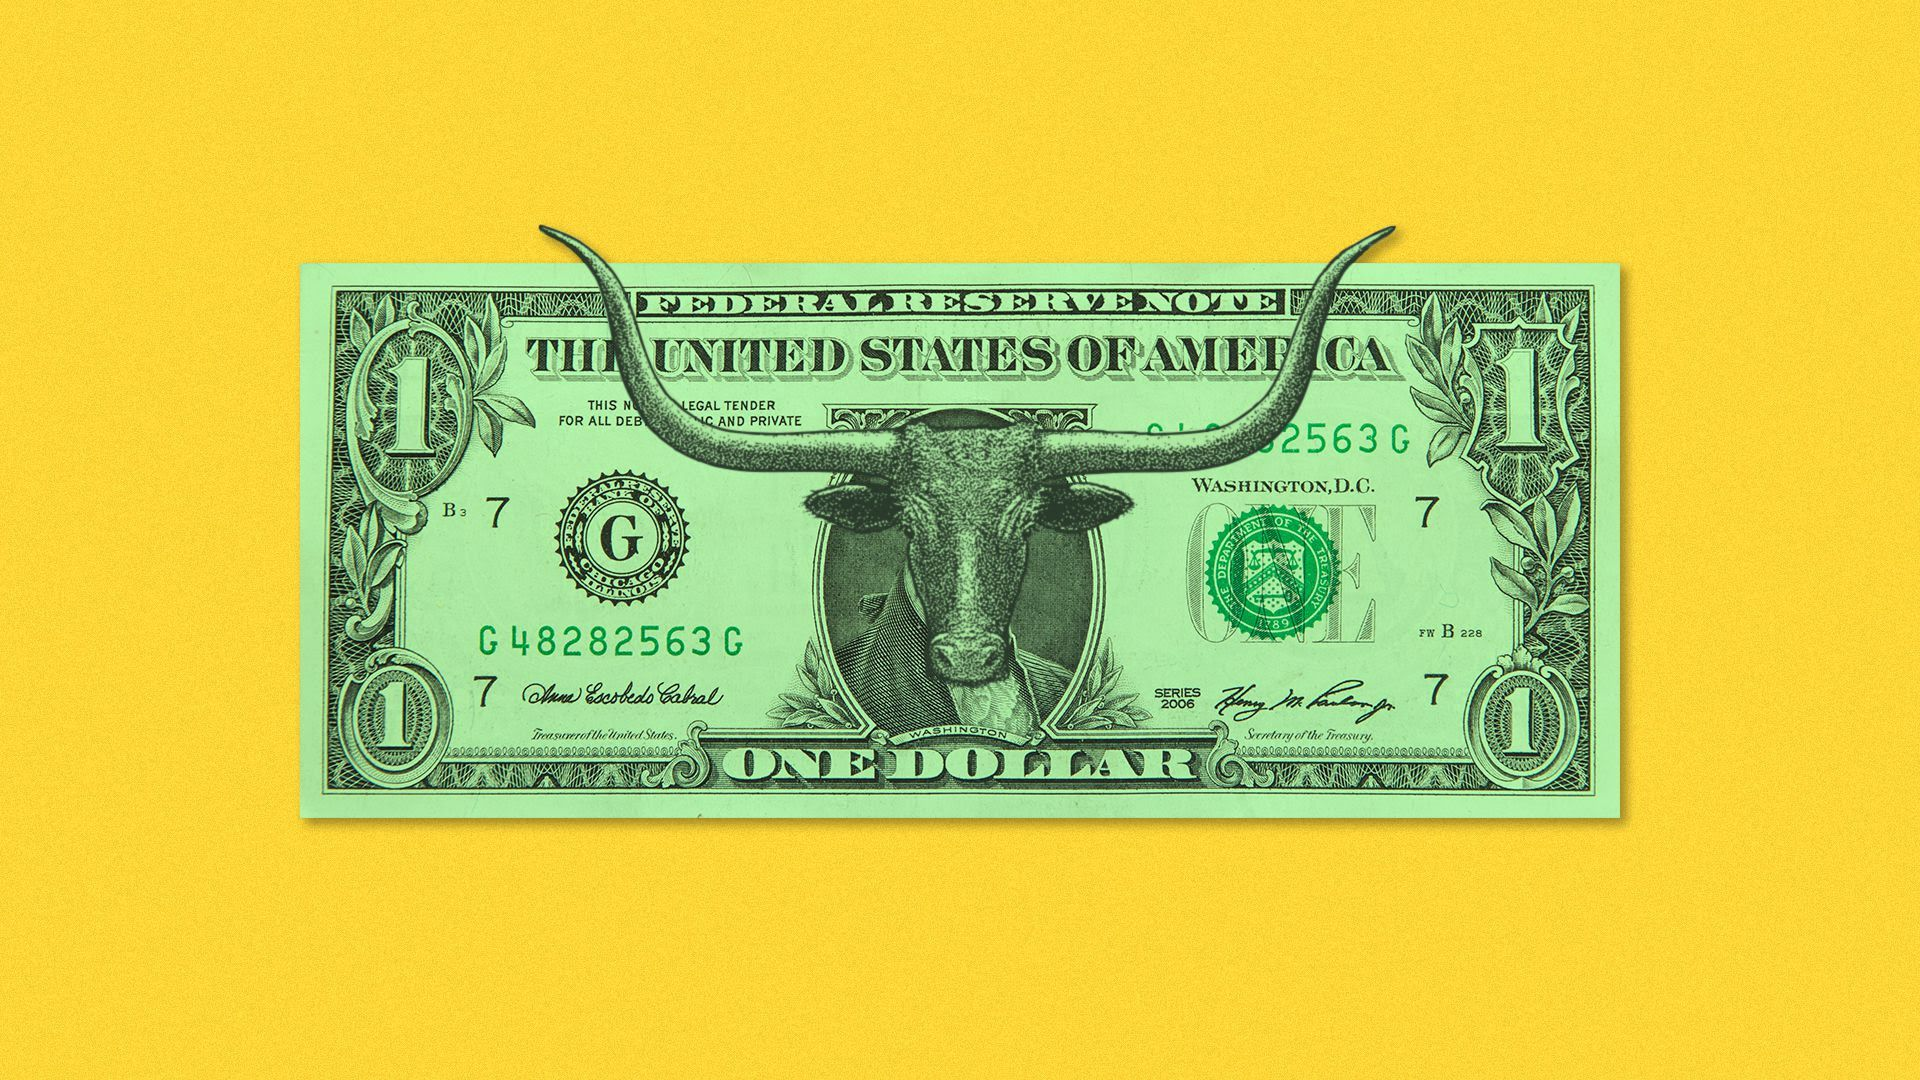 Illustration of a bull on the dollar bill in the place of a president